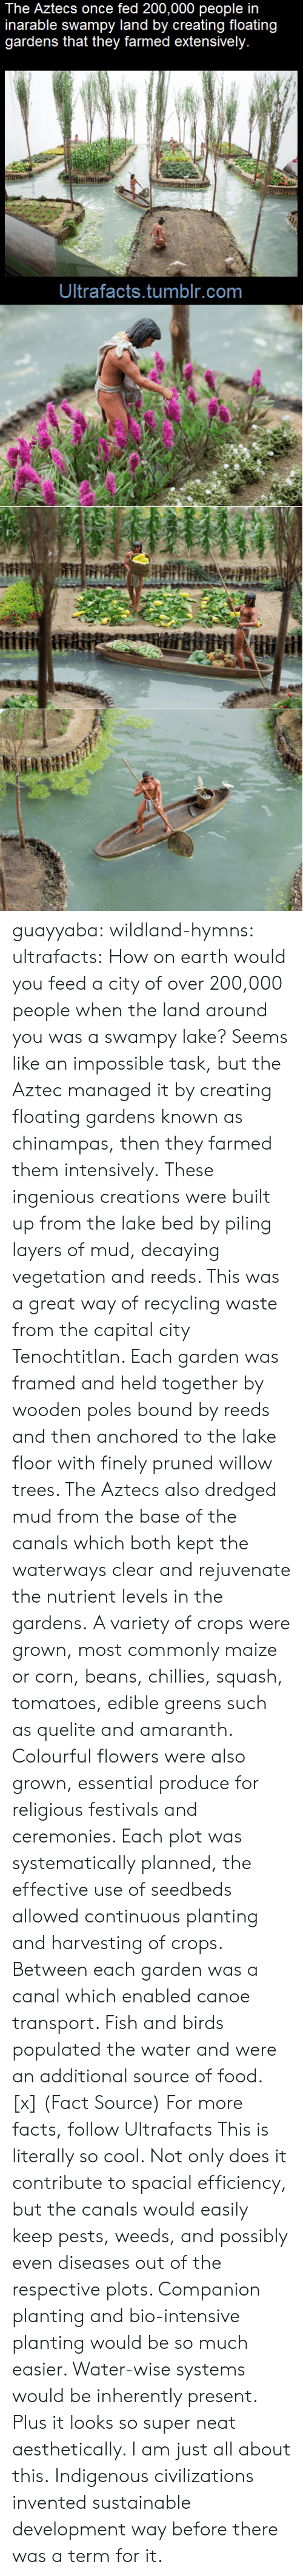 Colourful: The Aztecs once fed 200,000 people in  inarable swampy land by creating floating  gardens that they farmed extensively.  Ultrafacts.tumblr.com guayyaba: wildland-hymns:  ultrafacts:  How on earth would you feed a city of over 200,000 people when the land around you was a swampy lake? Seems like an impossible task, but the Aztec managed it by creating floating gardens known as chinampas, then they farmed them intensively. These ingenious creations were built up from the lake bed by piling layers of mud, decaying vegetation and reeds. This was a great way of recycling waste from the capital city Tenochtitlan. Each garden was framed and held together by wooden poles bound by reeds and then anchored to the lake floor with finely pruned willow trees. The Aztecs also dredged mud from the base of the canals which both kept the waterways clear and rejuvenate the nutrient levels in the gardens. A variety of crops were grown, most commonly maize or corn, beans, chillies, squash, tomatoes, edible greens such as quelite and amaranth. Colourful flowers were also grown, essential produce for religious festivals and ceremonies. Each plot was systematically planned, the effective use of seedbeds allowed continuous planting and harvesting of crops. Between each garden was a canal which enabled canoe transport. Fish and birds populated the water and were an additional source of food. [x] (Fact Source) For more facts, follow Ultrafacts   This is literally so cool. Not only does it contribute to spacial efficiency, but the canals would easily keep pests, weeds, and possibly even diseases out of the respective plots. Companion planting and bio-intensive planting would be so much easier. Water-wise systems would be inherently present. Plus it looks so super neat aesthetically. I am just all about this.   Indigenous civilizations invented sustainable development way before there was a term for it.